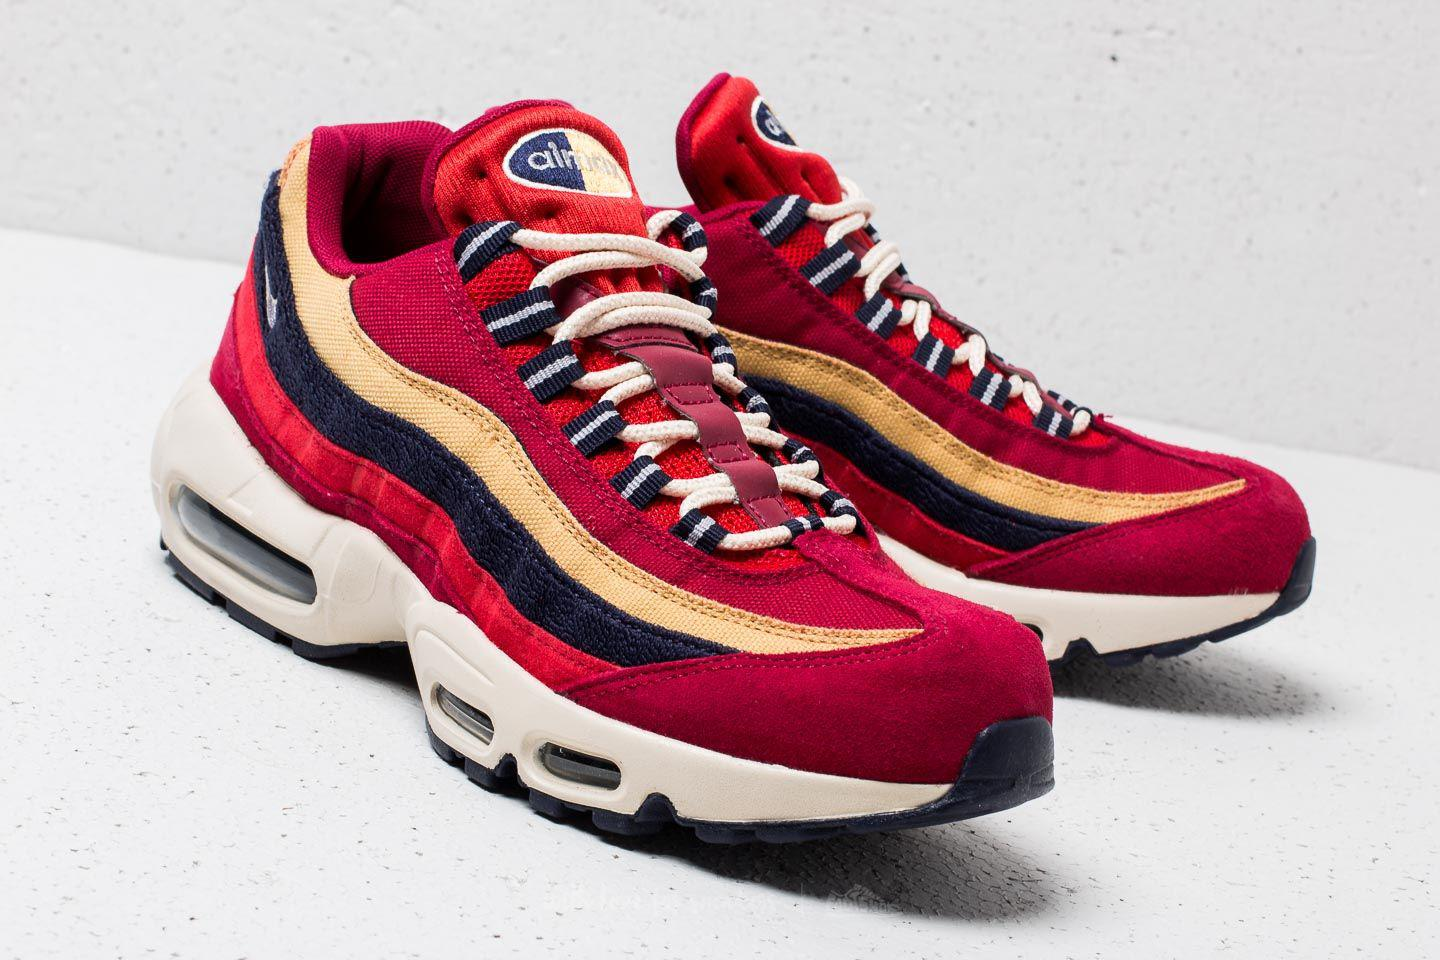 a1afc9d232b Nike Air Max 95 Premium Red Crush  Provence Purple in Red for Men - Lyst